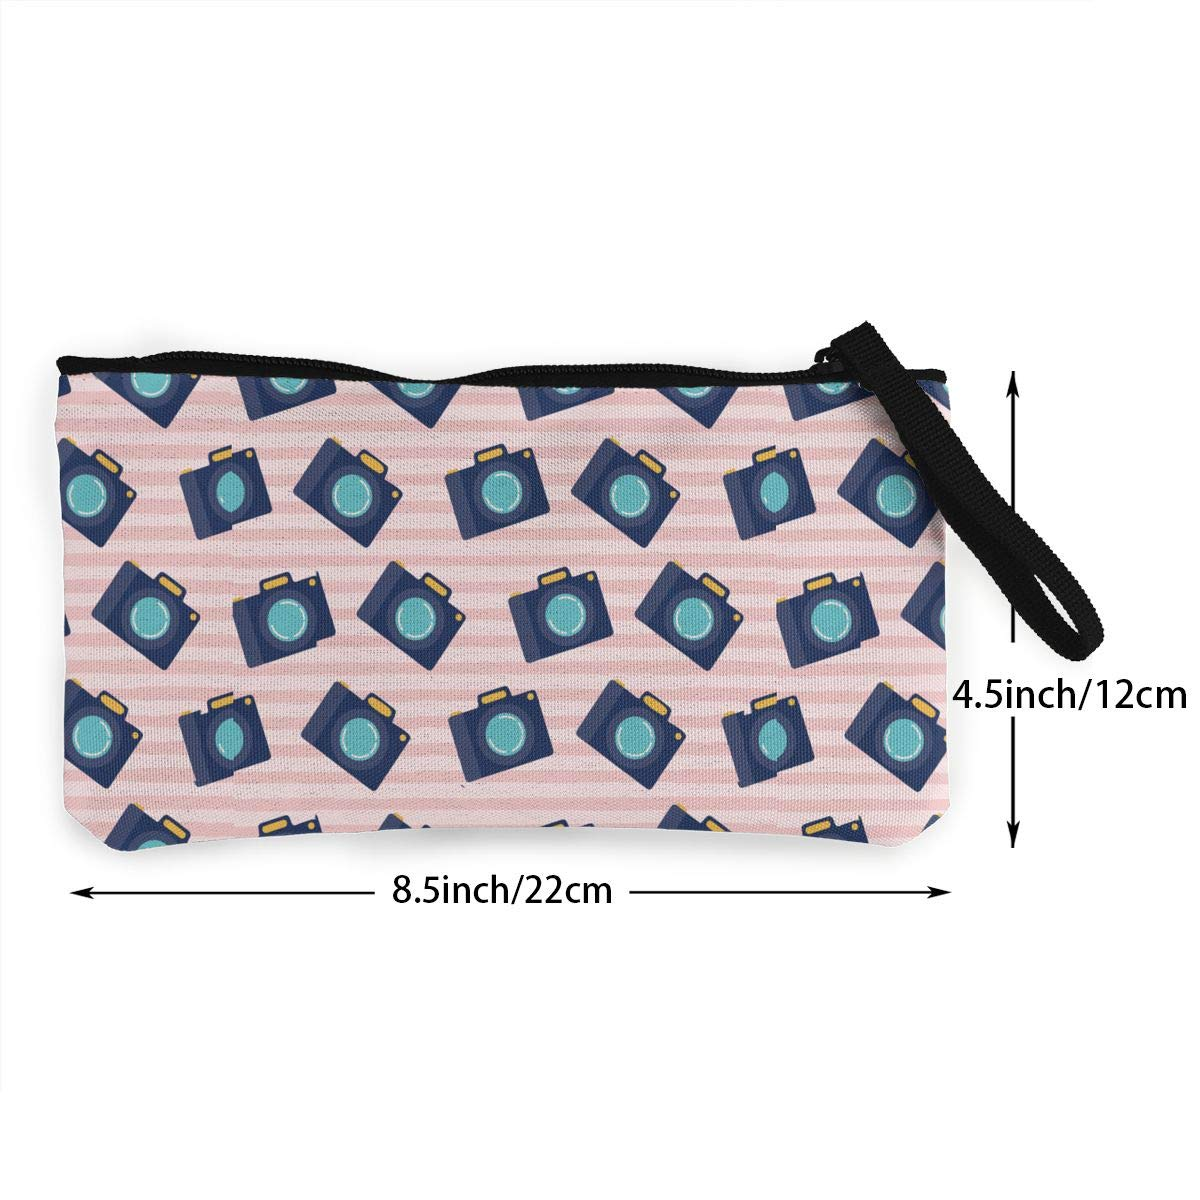 Camera Pattern Wallet Coin Purse Canvas Zipper Make Up for Travel